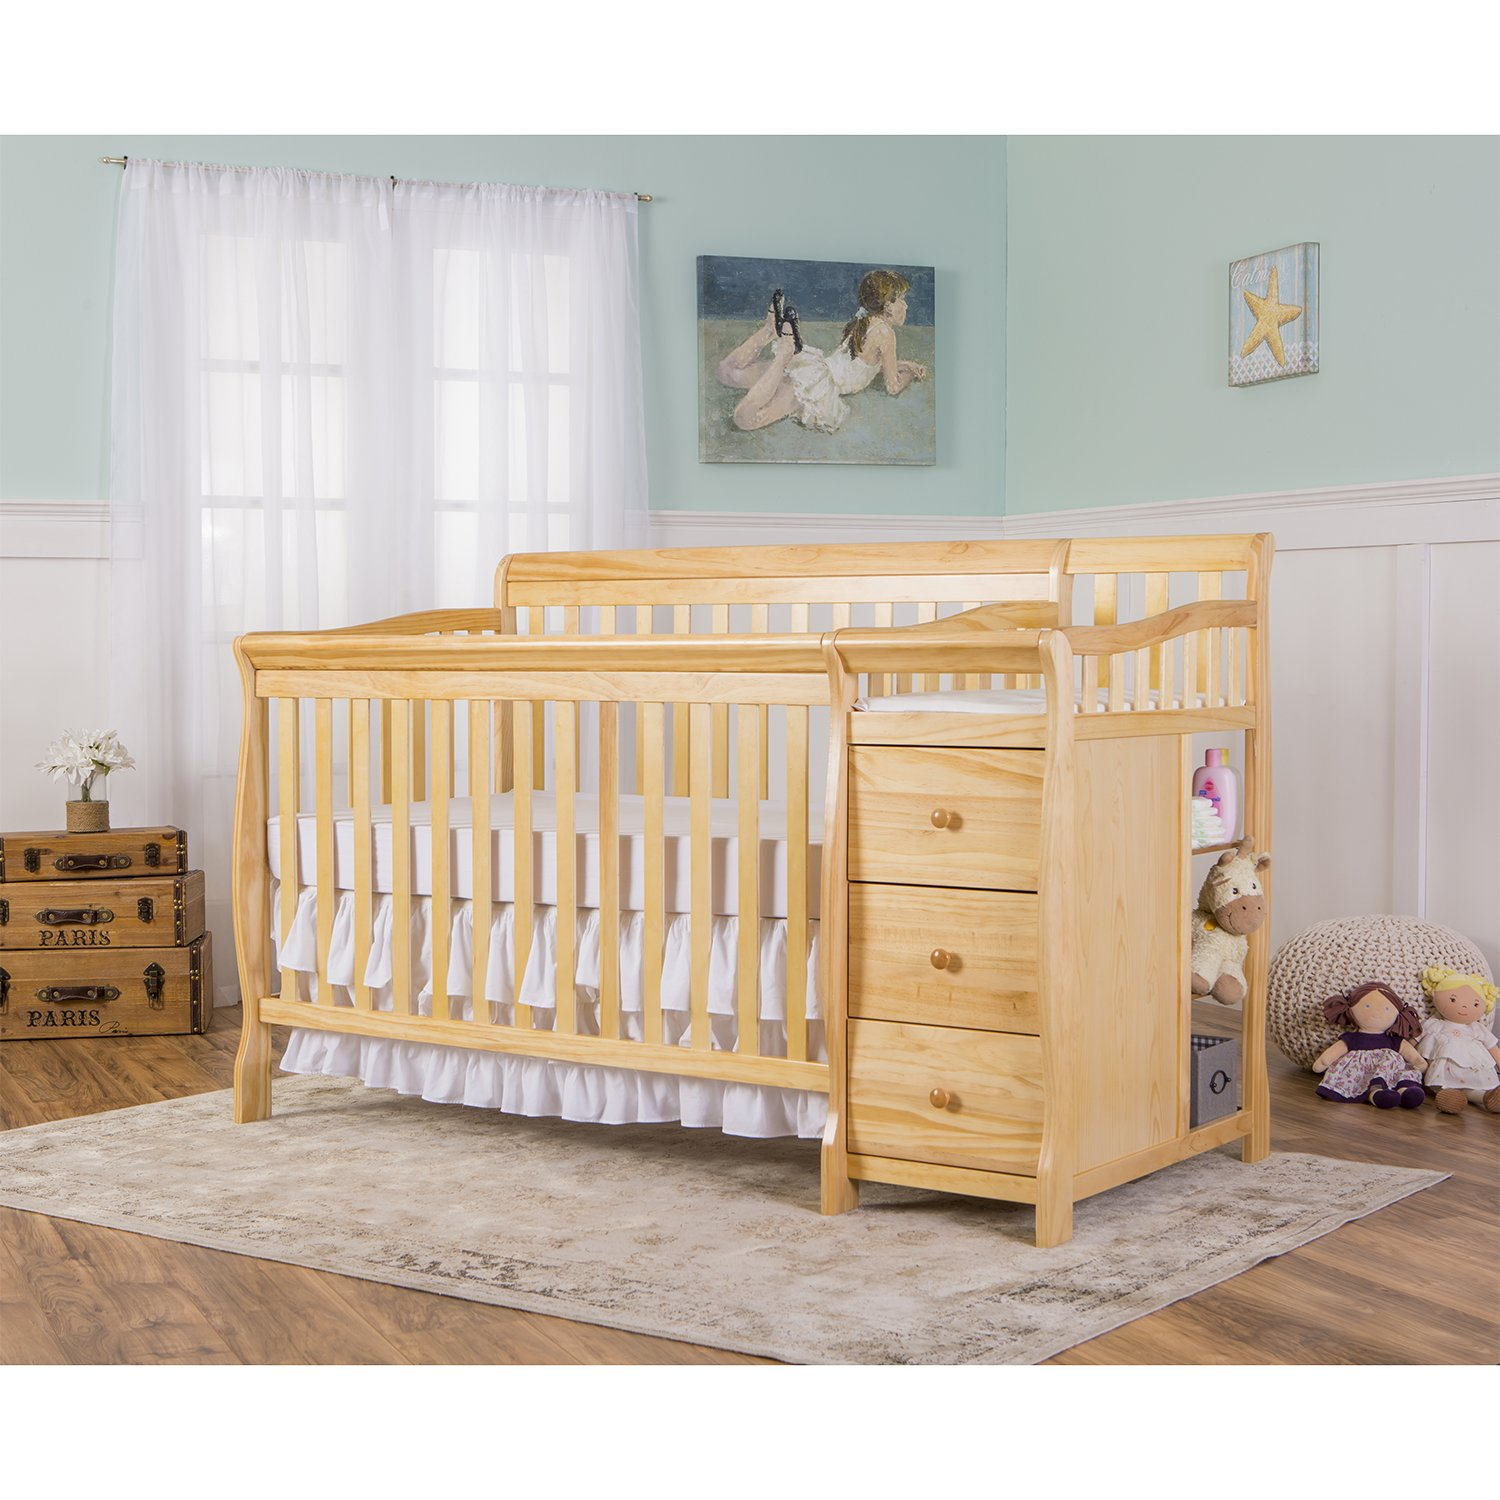 Dream On Me 5 in 1 Brody Convertible Crib with Changer, Natural by Dream On Me (Image #4)